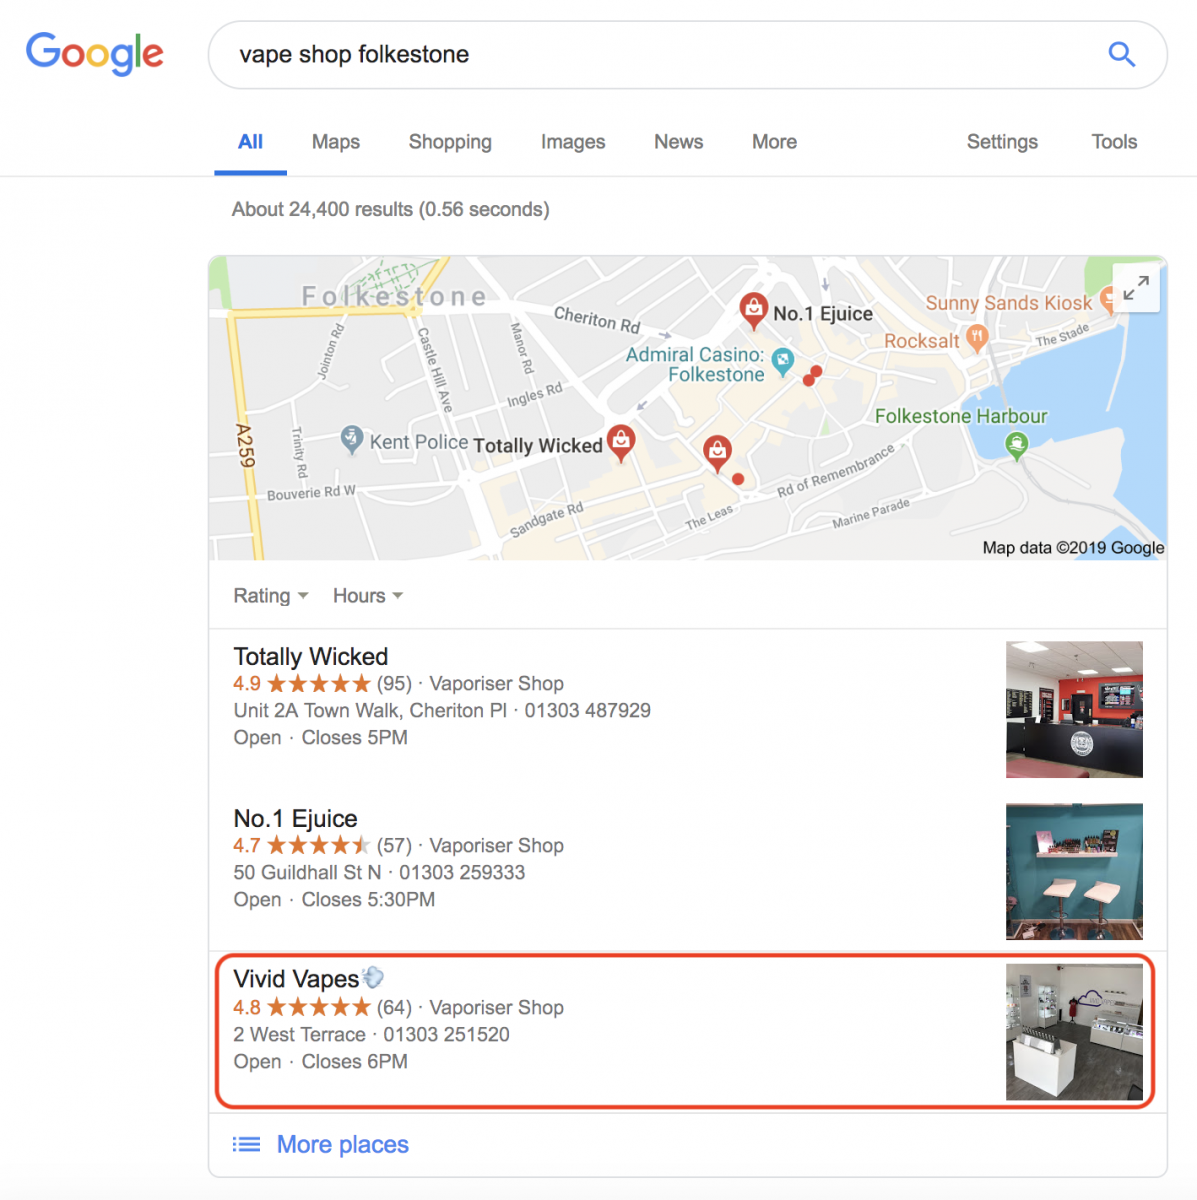 SEO Pages Google-Local-SEO-Optimisation-SEOPages-London-SEO Case Study: Vape Shop Local SEO Local SEO SEO Case Study